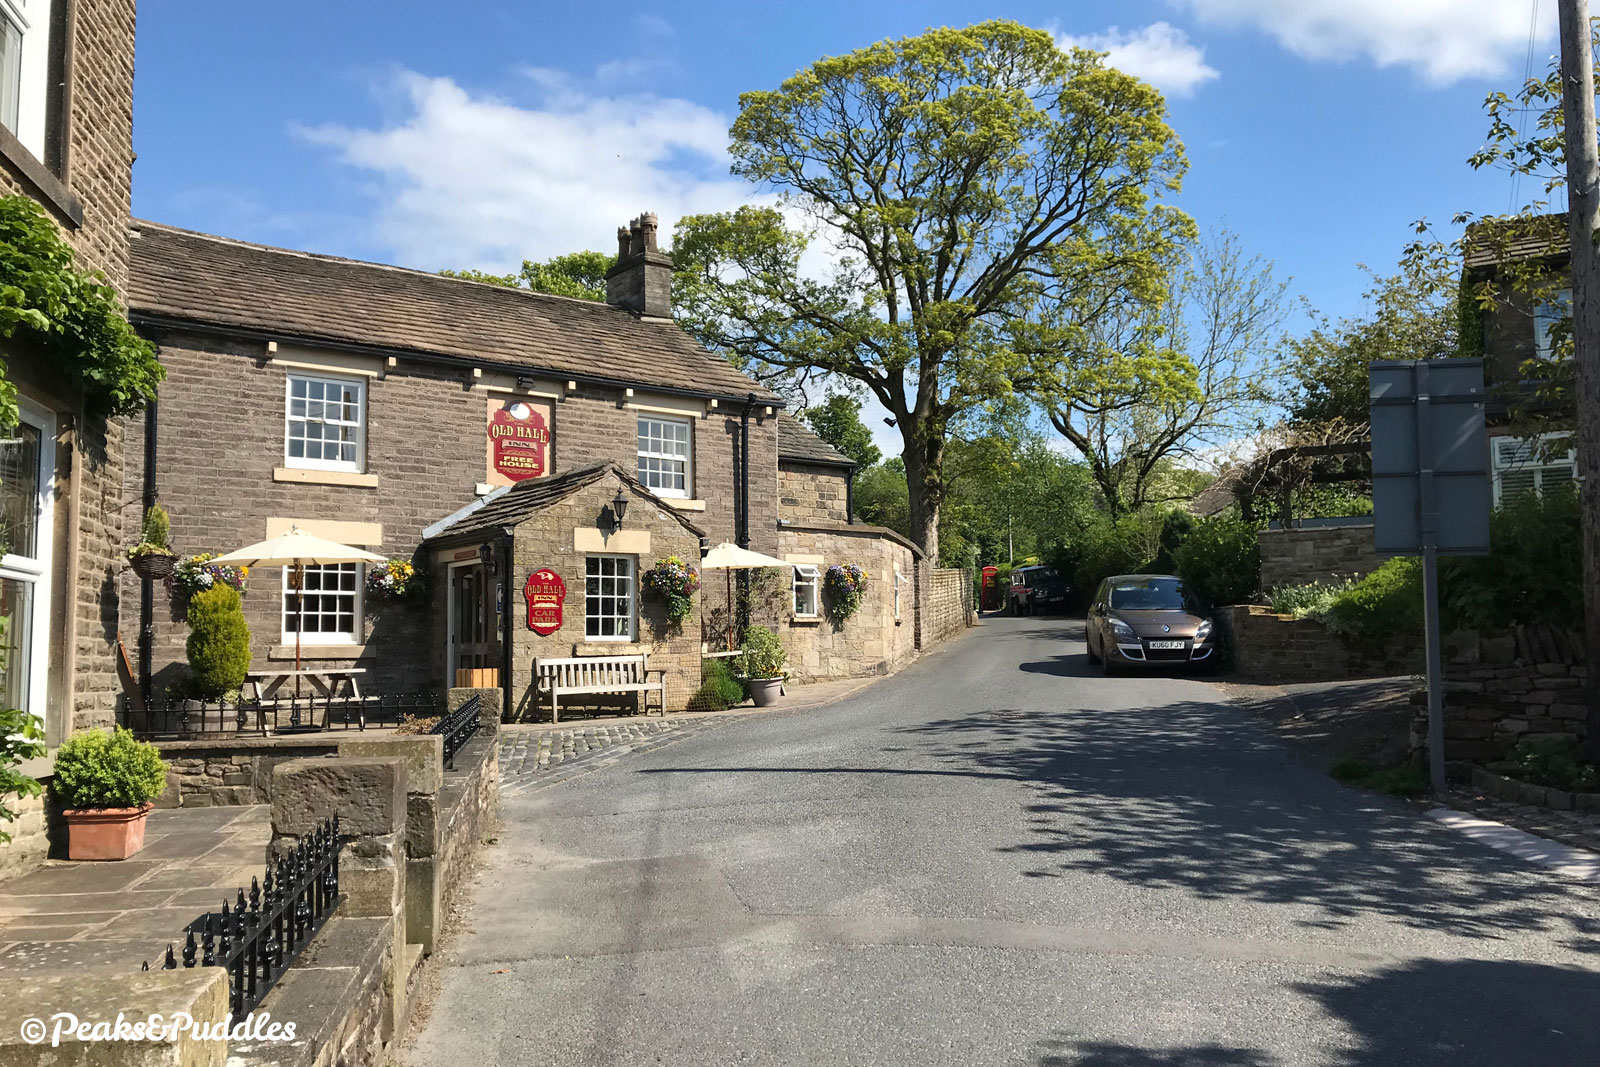 The Old Hall Inn on the climb up through Whitehough, always a popular spot at weekends.